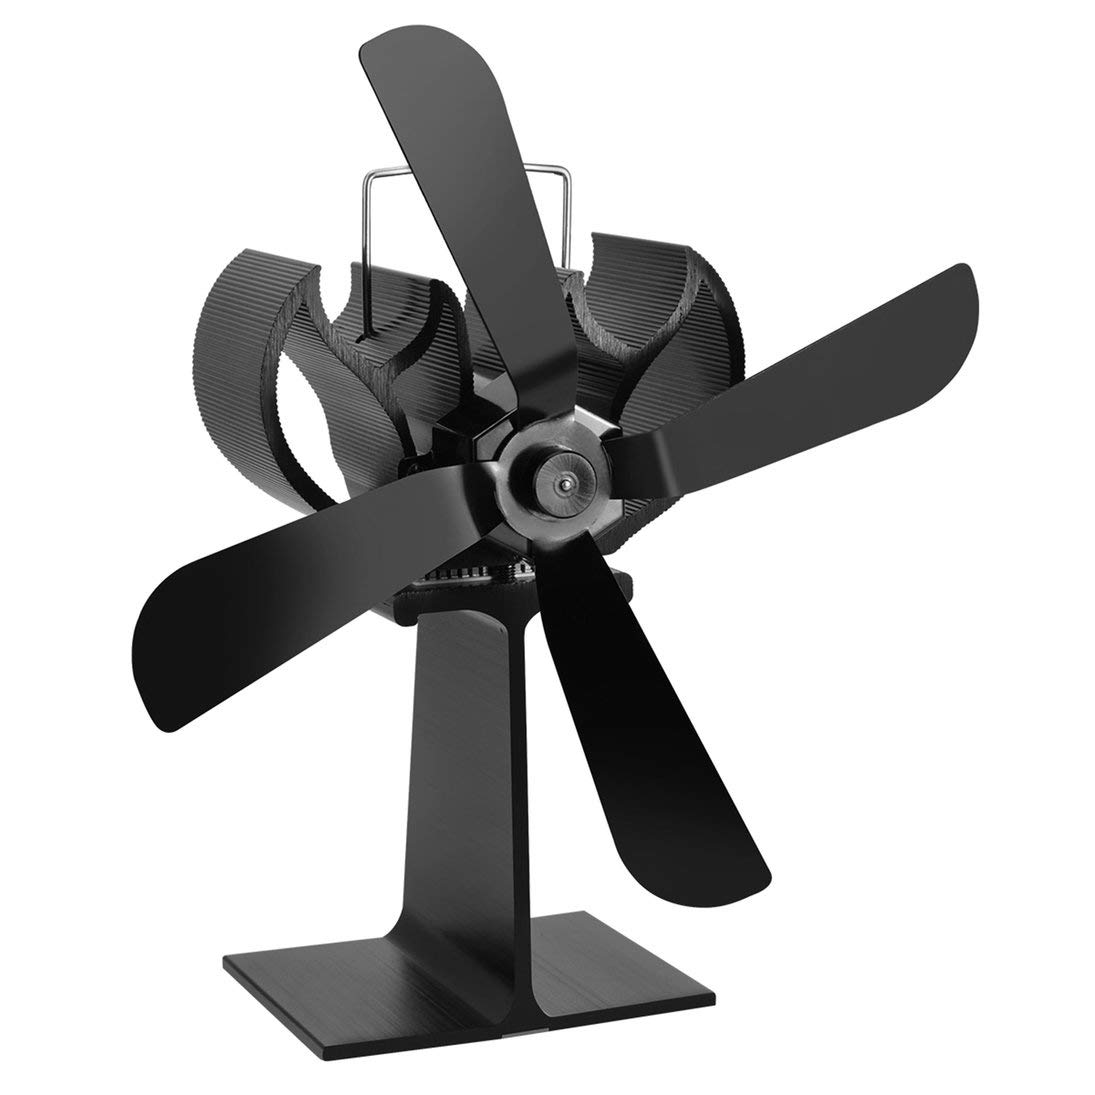 Baynne Heat Powered 4 Blades Stove Fan Log Fireplace Wood Burner Eco Ultra Quiet Blower No Battery or Electricity